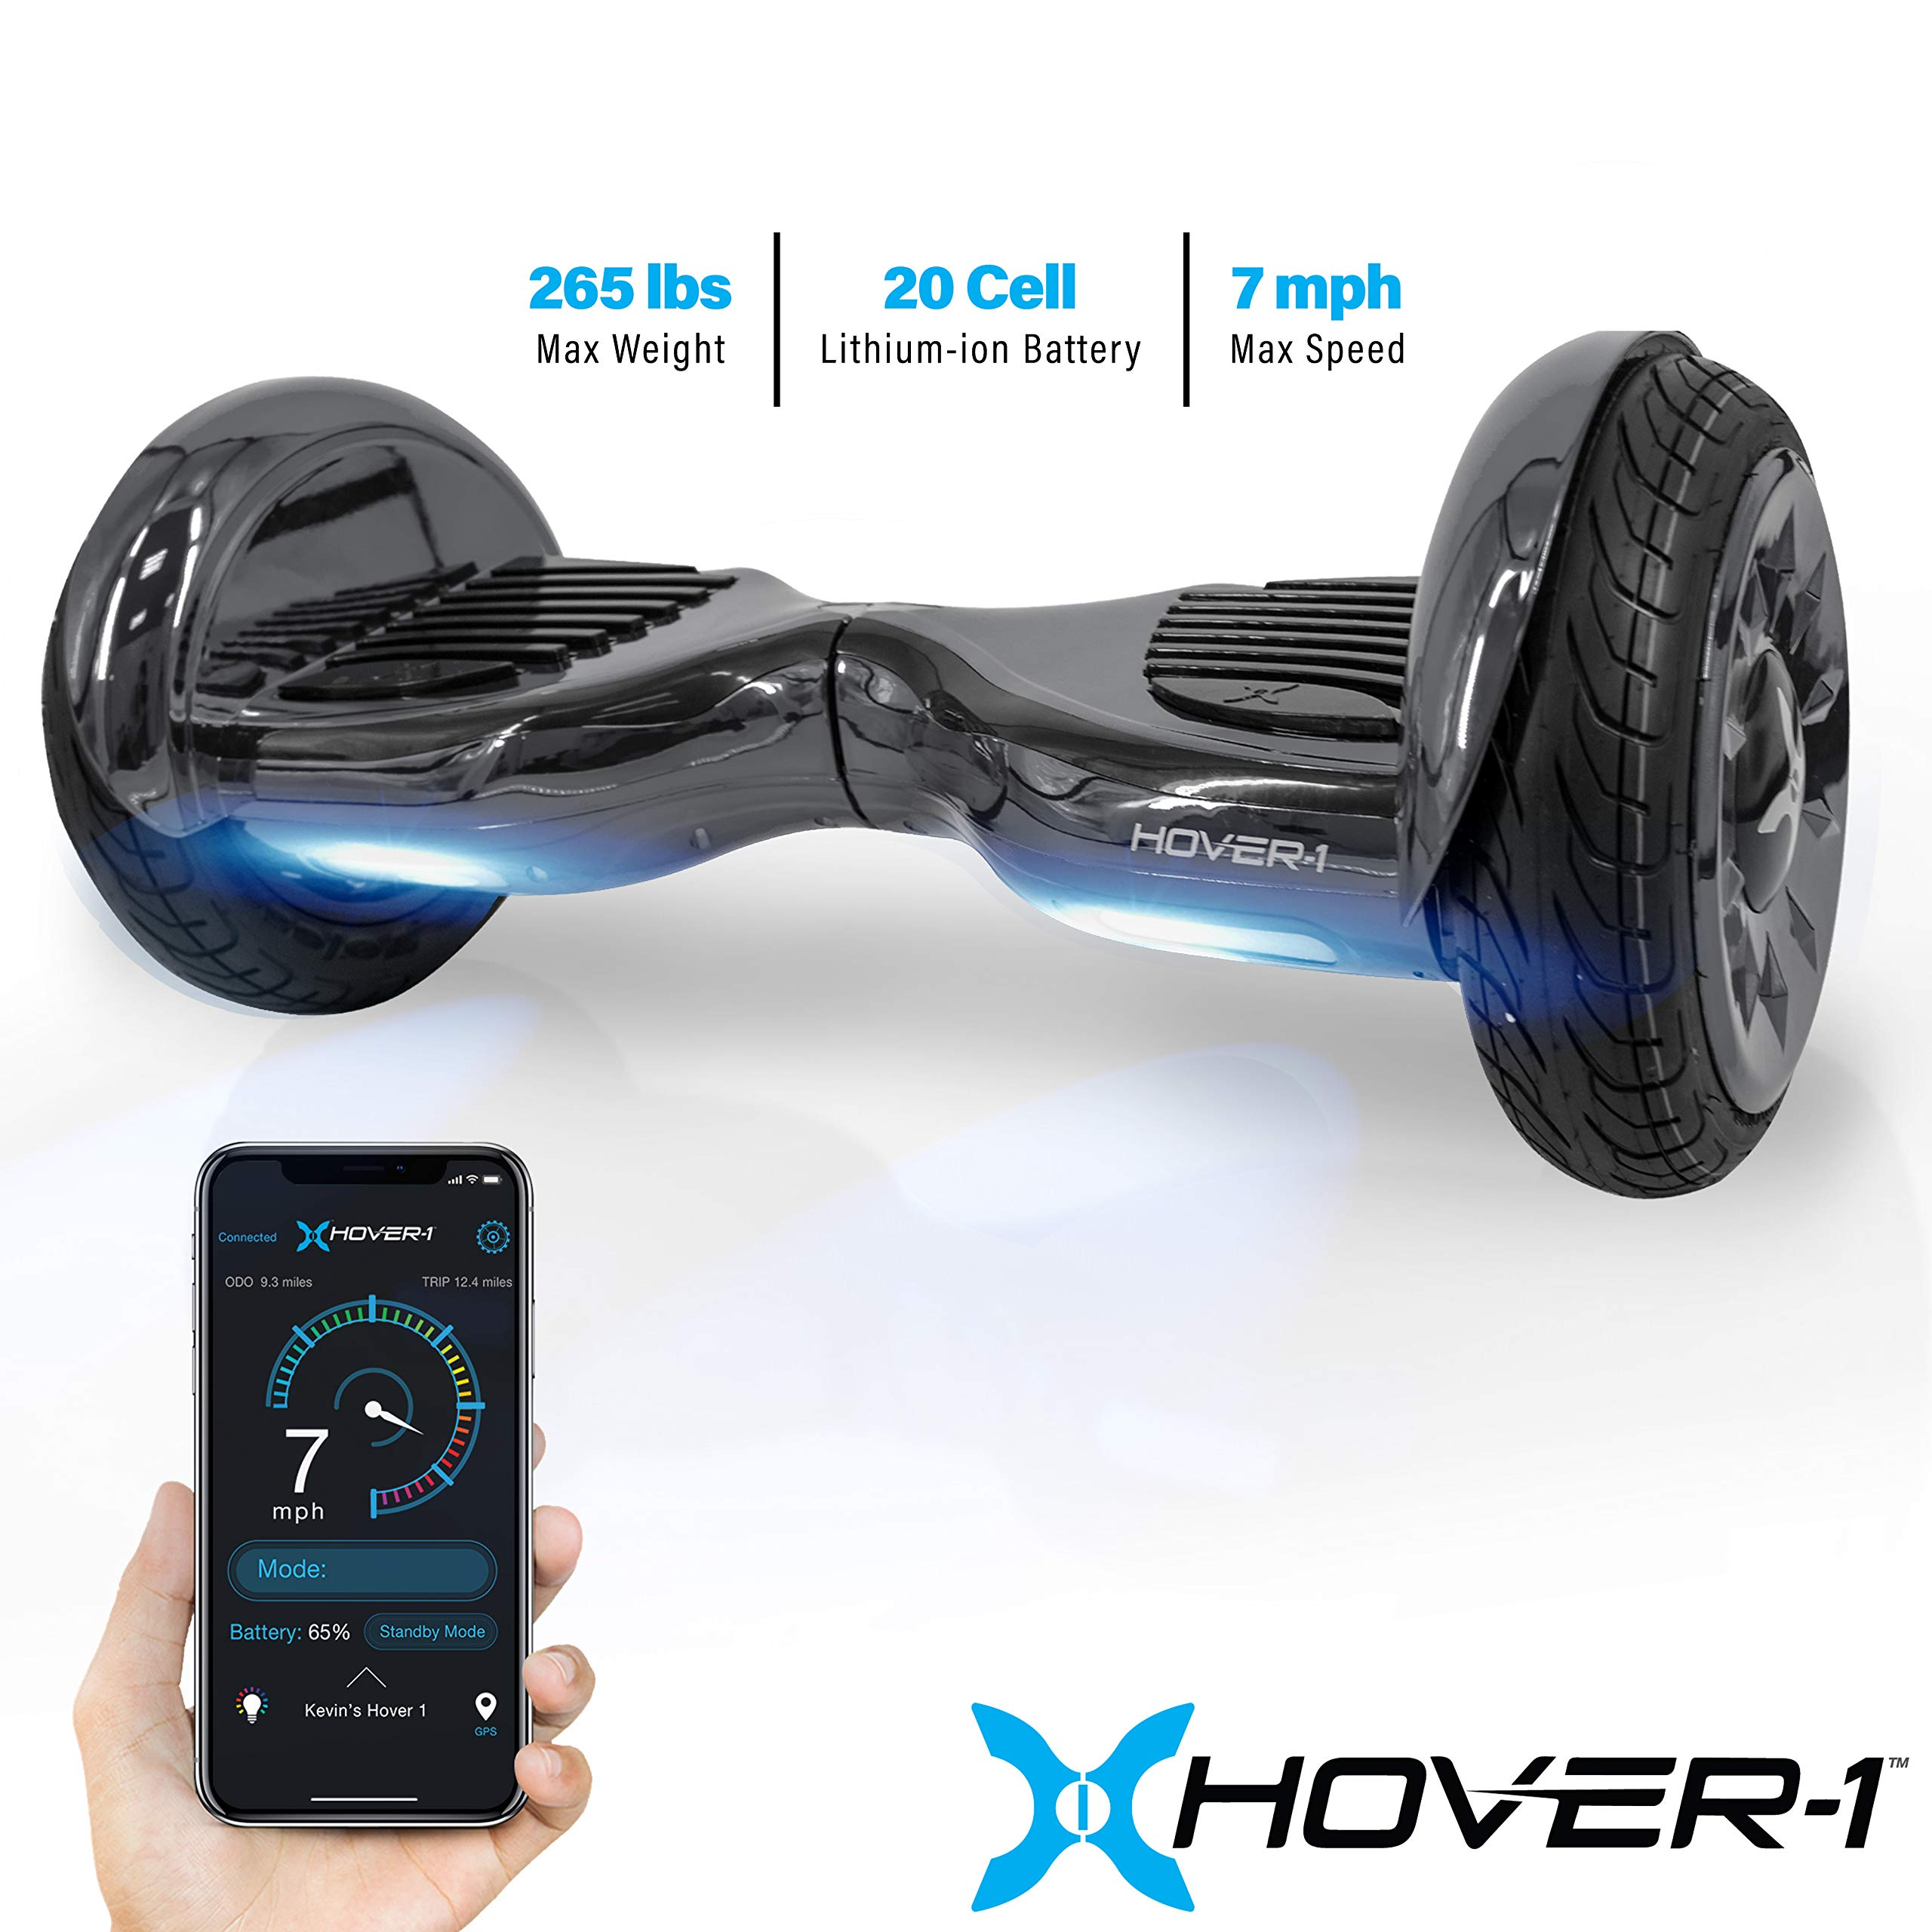 Hover-1 Titan Electric Self-Balancing Hoverboard Scooter by Hover-1